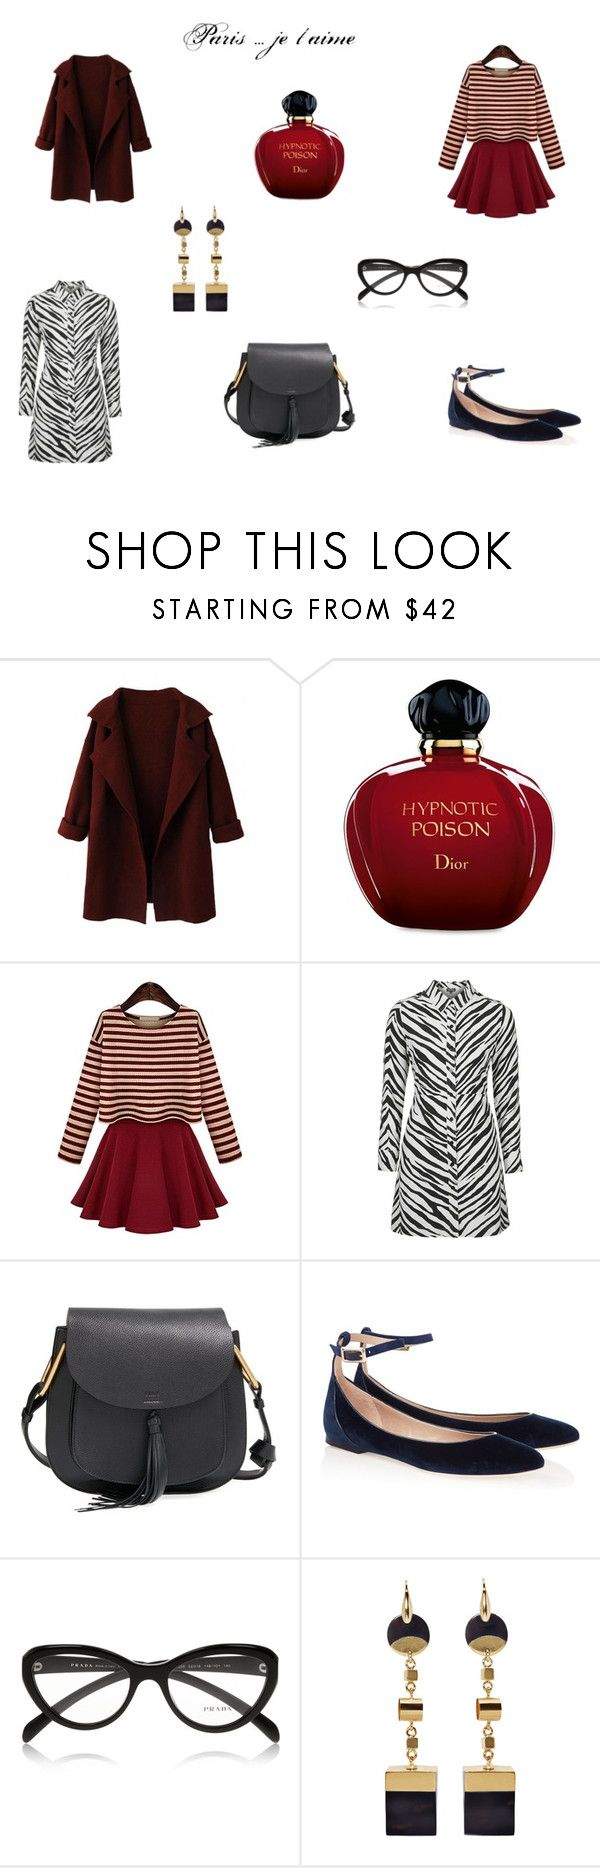 """""""Paris....je t'aime"""" by mousouza on Polyvore featuring Christian Dior, Topshop, Chloé, Prada and Isabel Marant"""